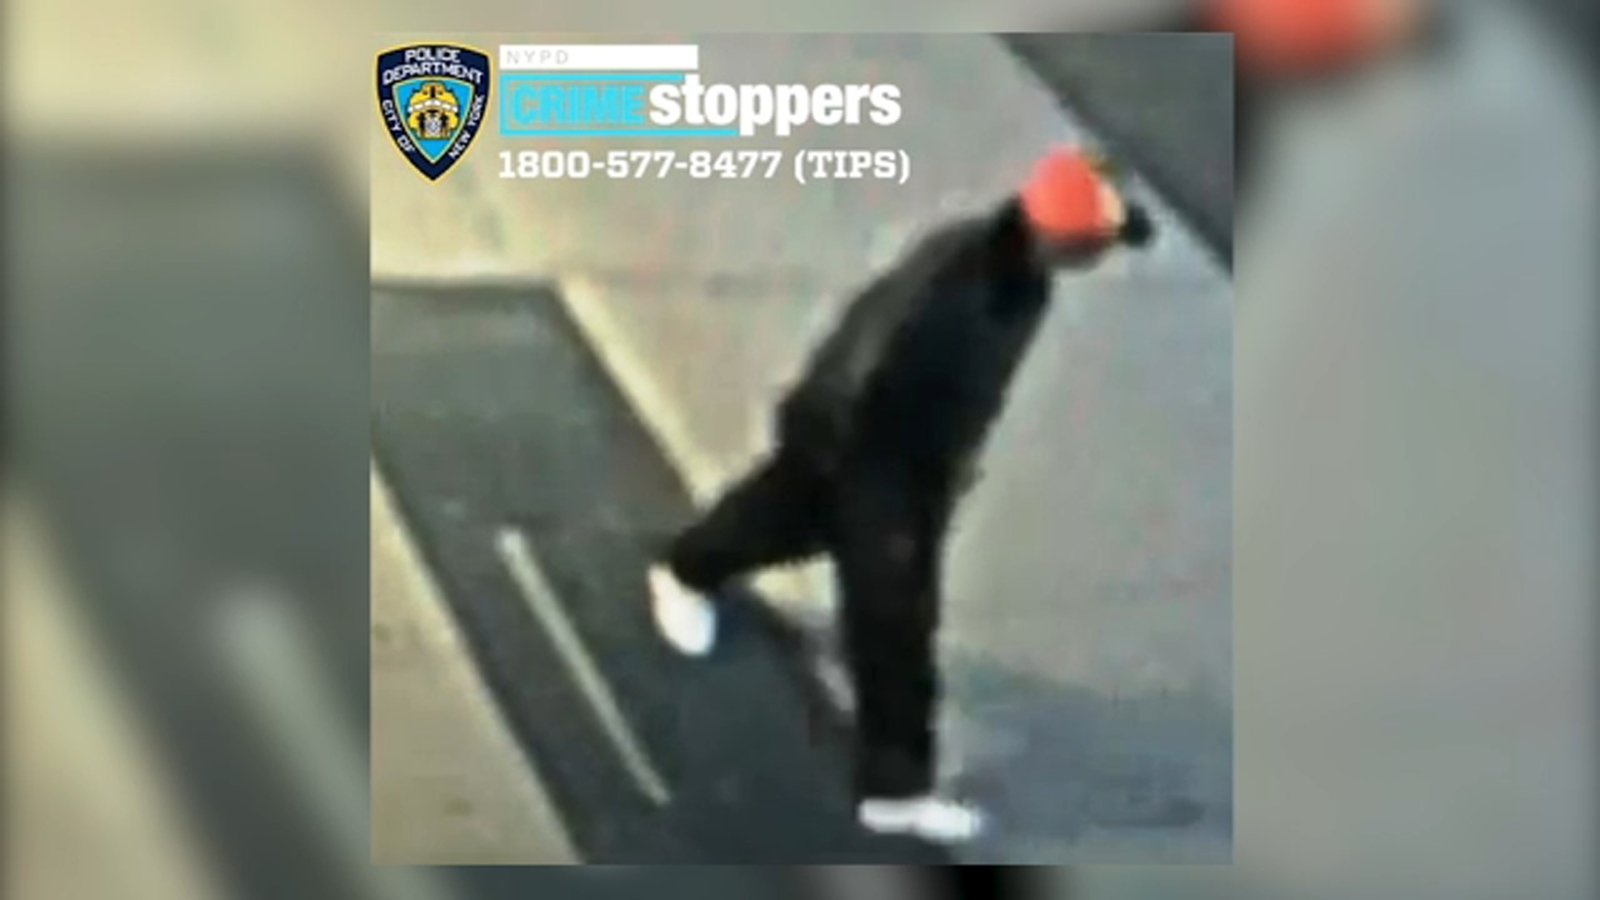 abc7.com: 61-year-old Asian American man critically injured in brutal, unprovoked assault in Manhattan